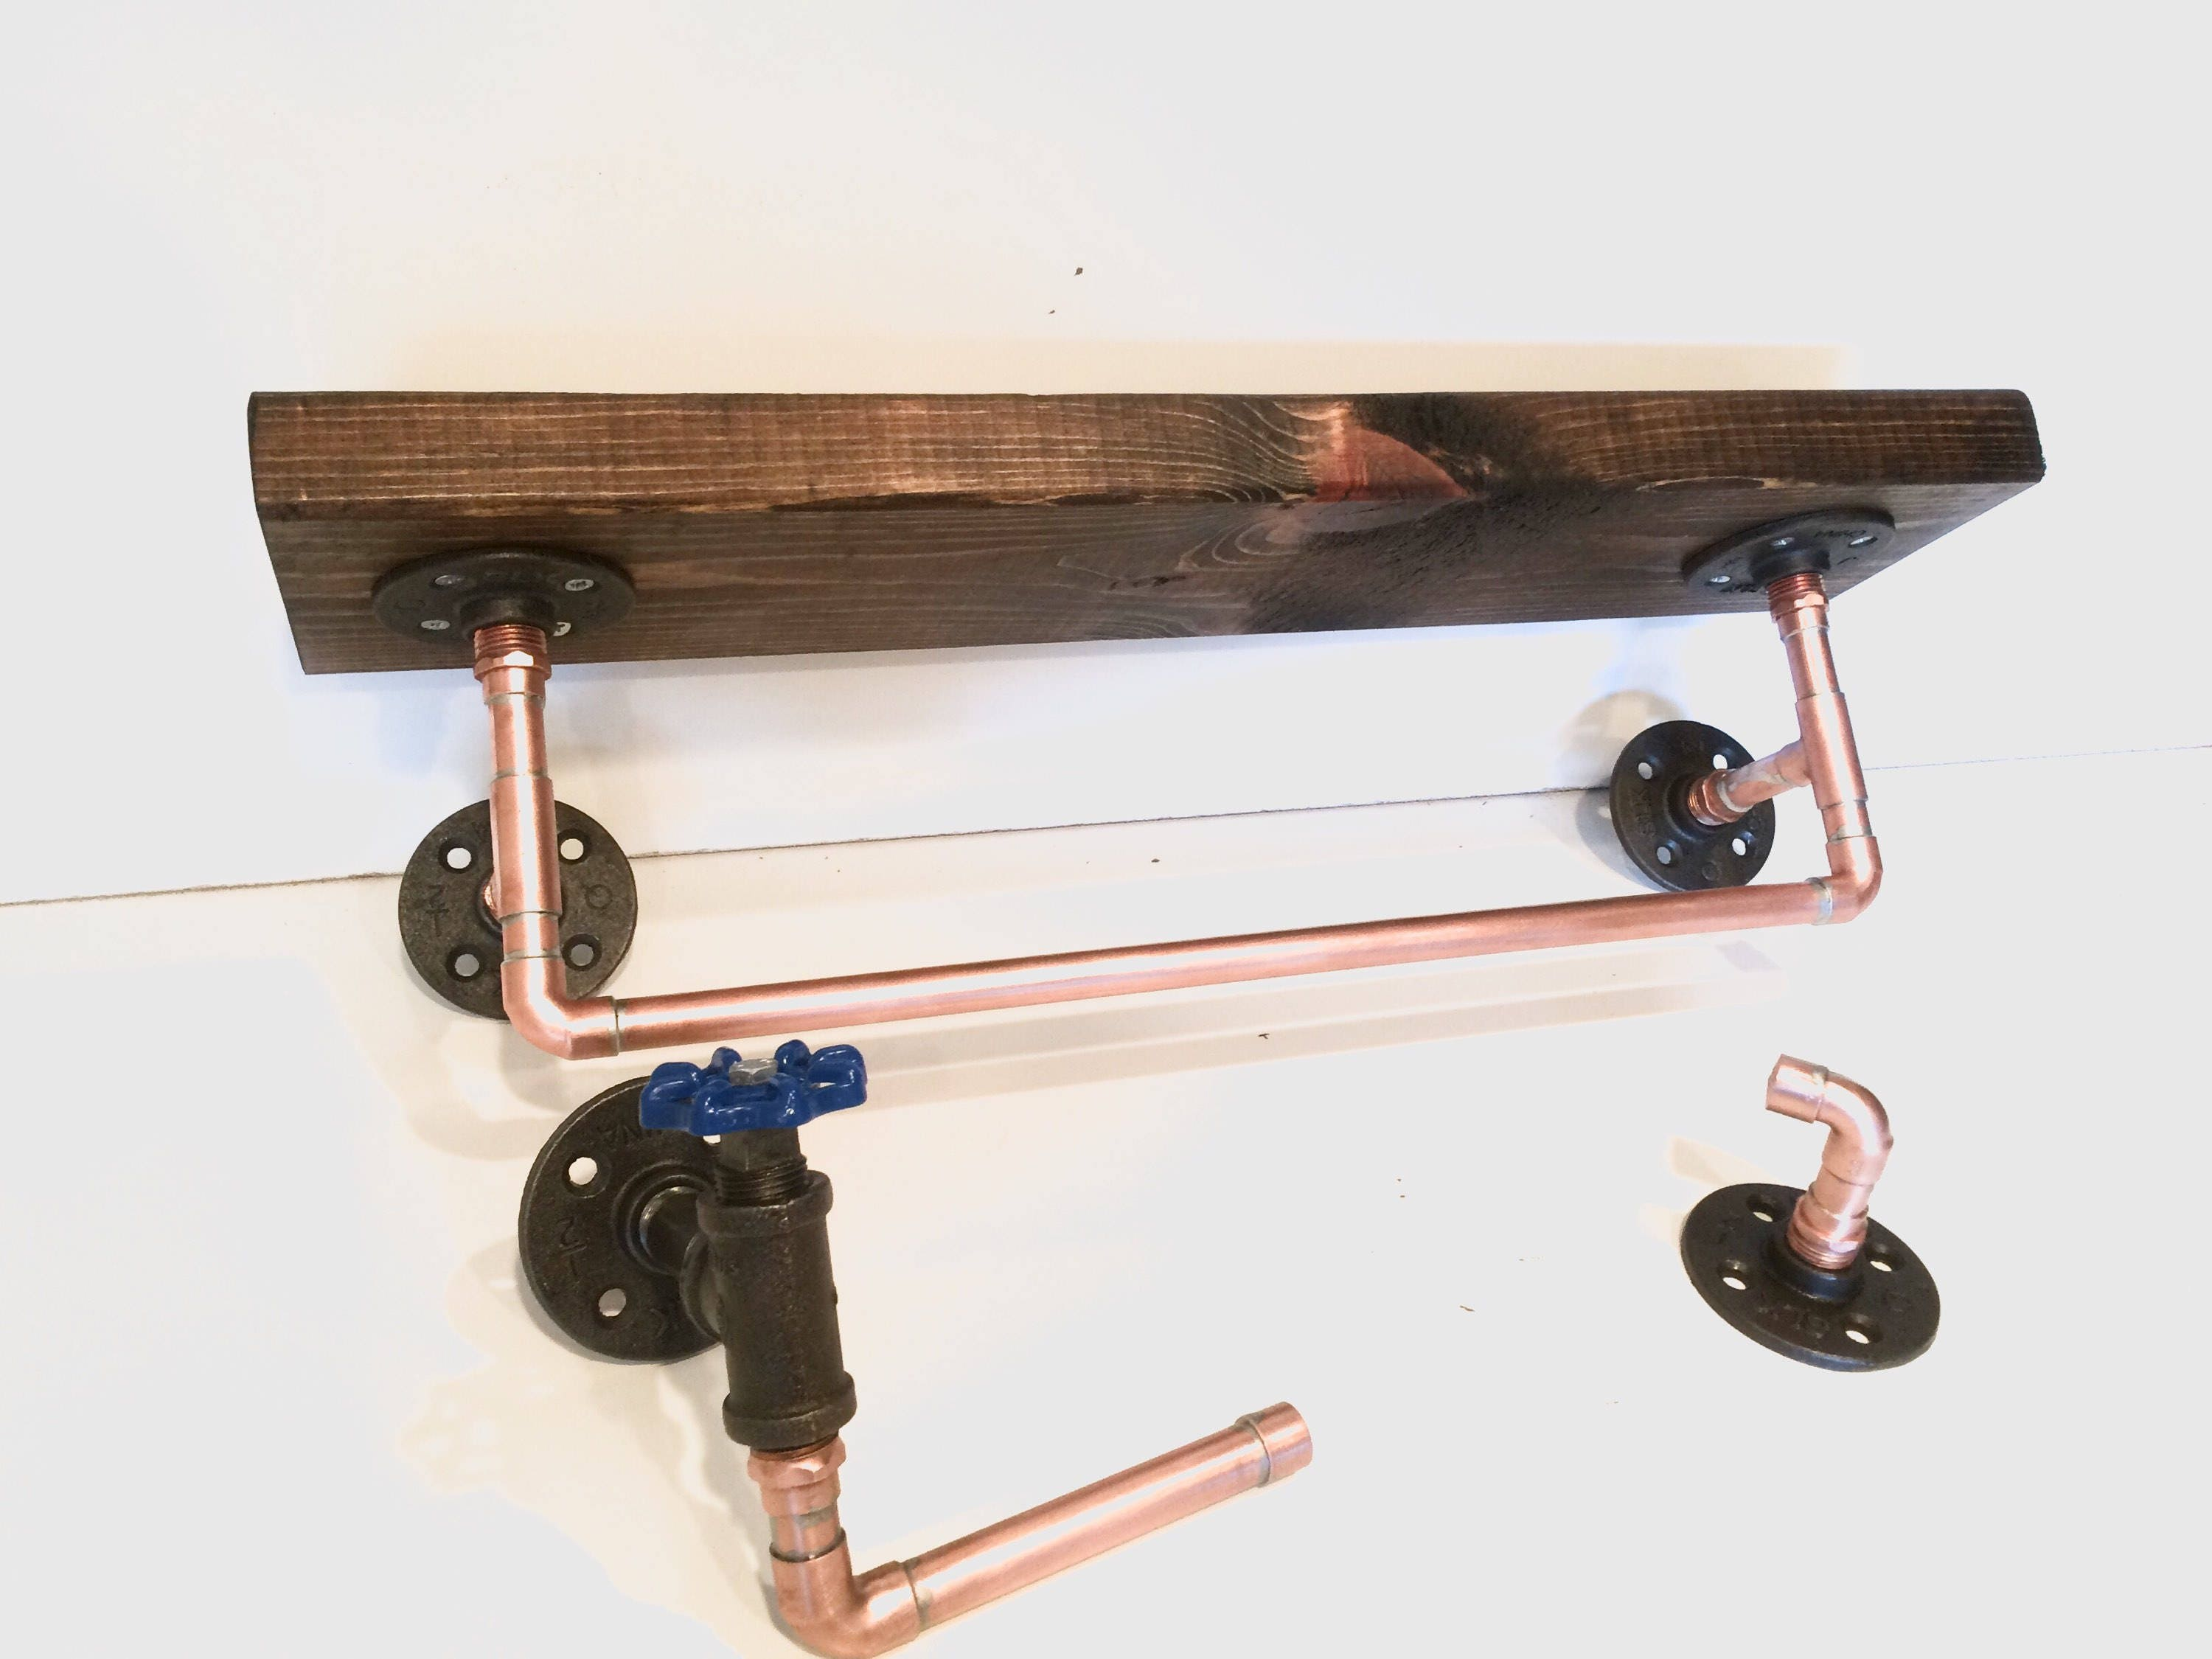 hardware made double oil towel holder rack and mounting helsinki sleek bar shelf with solid bathroom this comes of is bronze rubbed brass dark